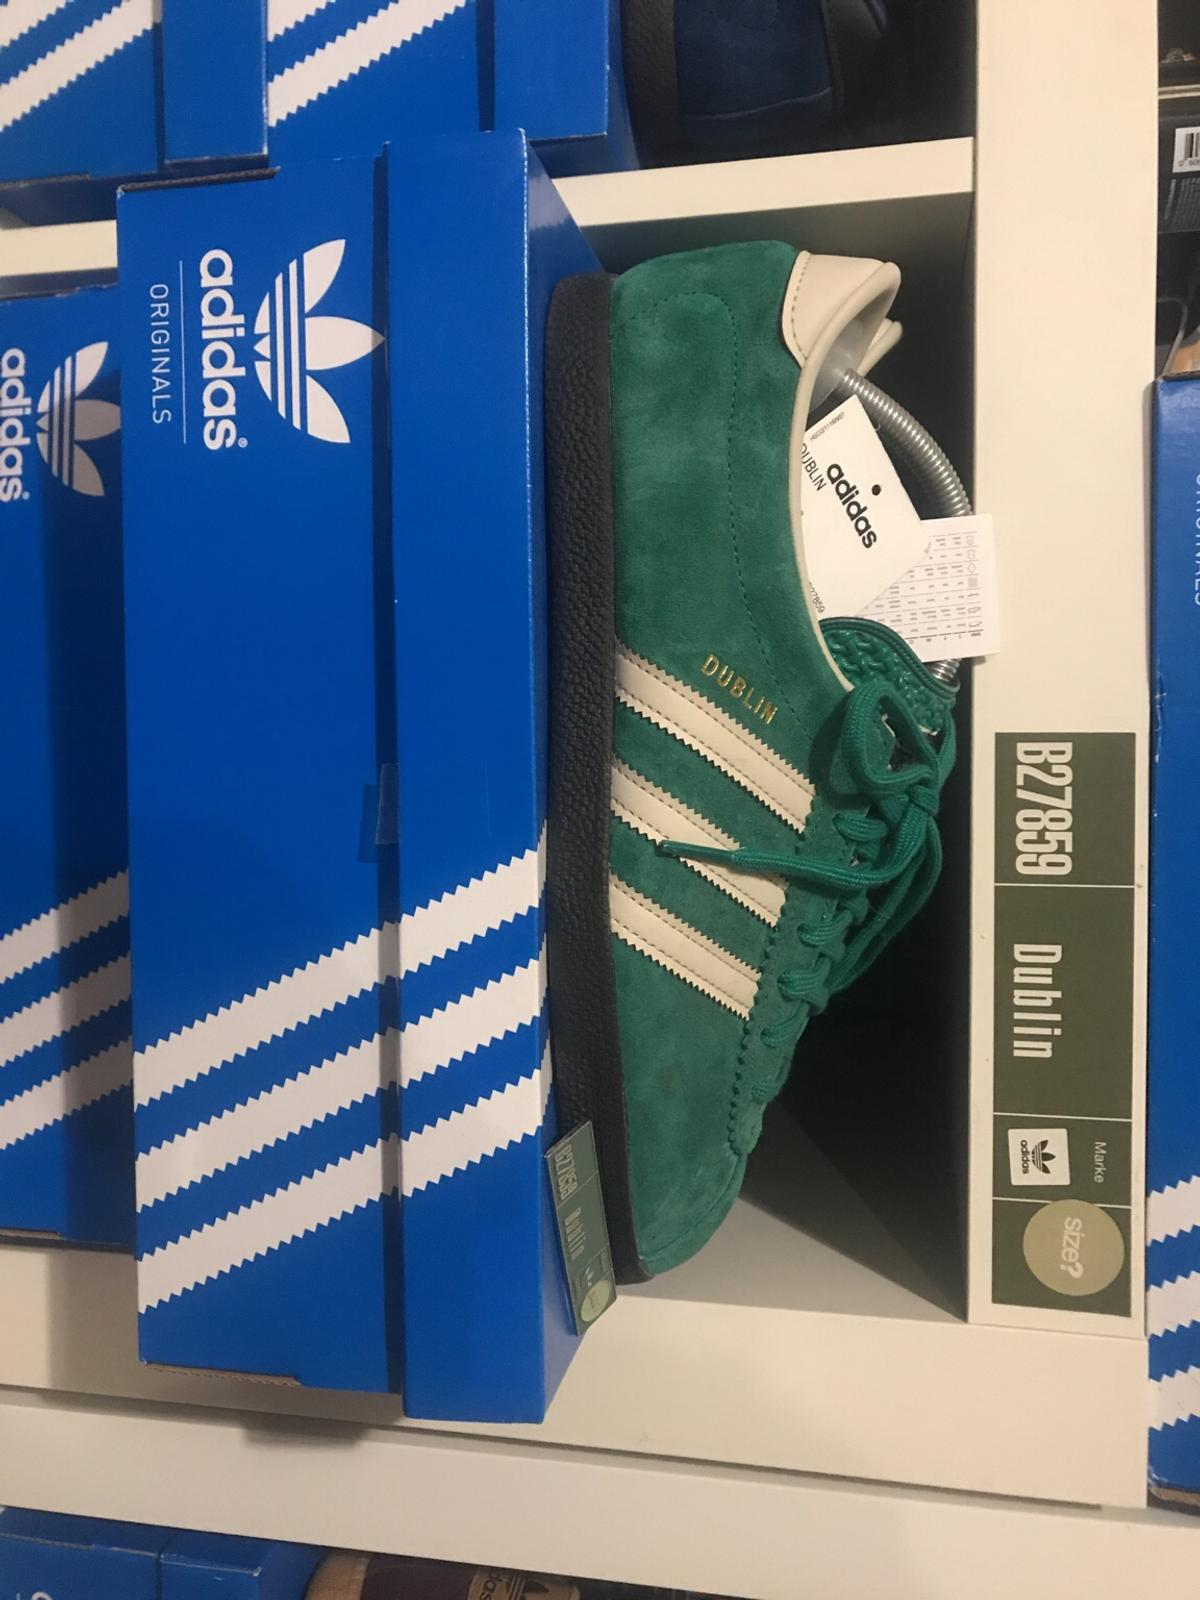 Adversario ajedrez Repulsión  ADIDAS DUBLIN ST PATRICKS in BD20 Craven for £200.00 for sale | Shpock